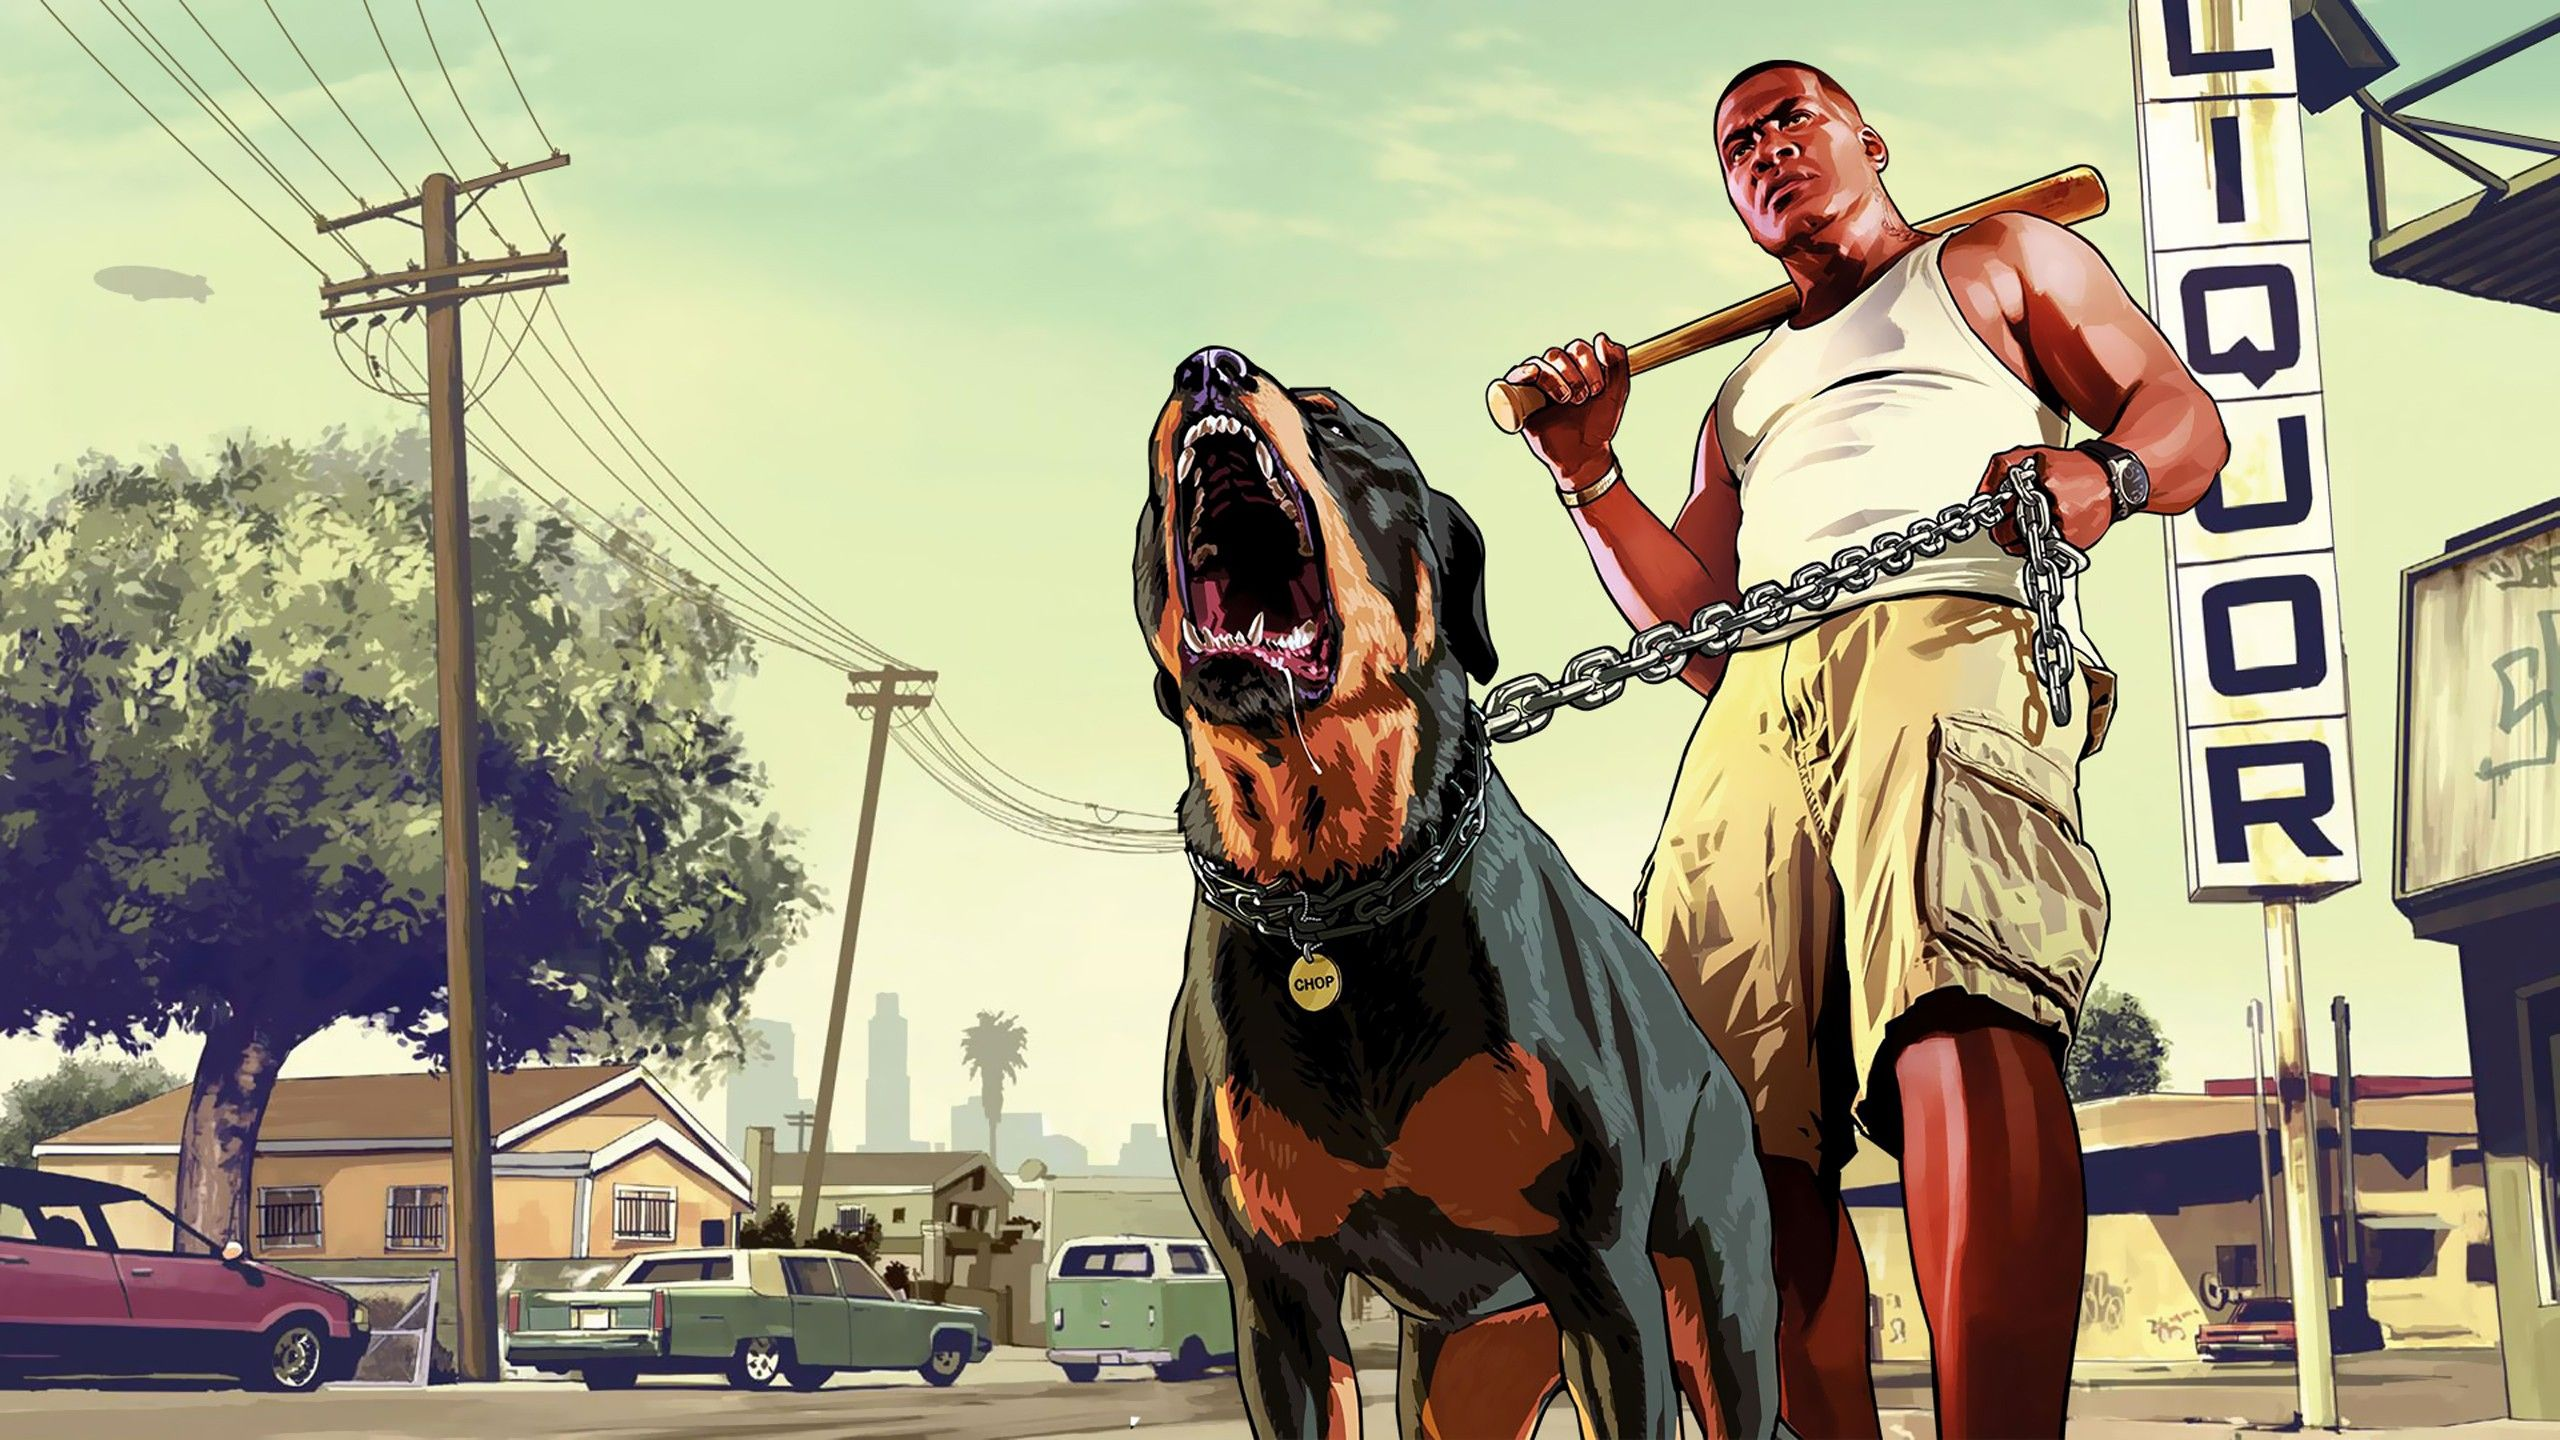 Grand Theft Auto Rockstar Games Grand Theft Auto 5 2560x1440 Wallpaper Grand Theft Auto Rottweiler Pictures Abstract Wallpaper Backgrounds